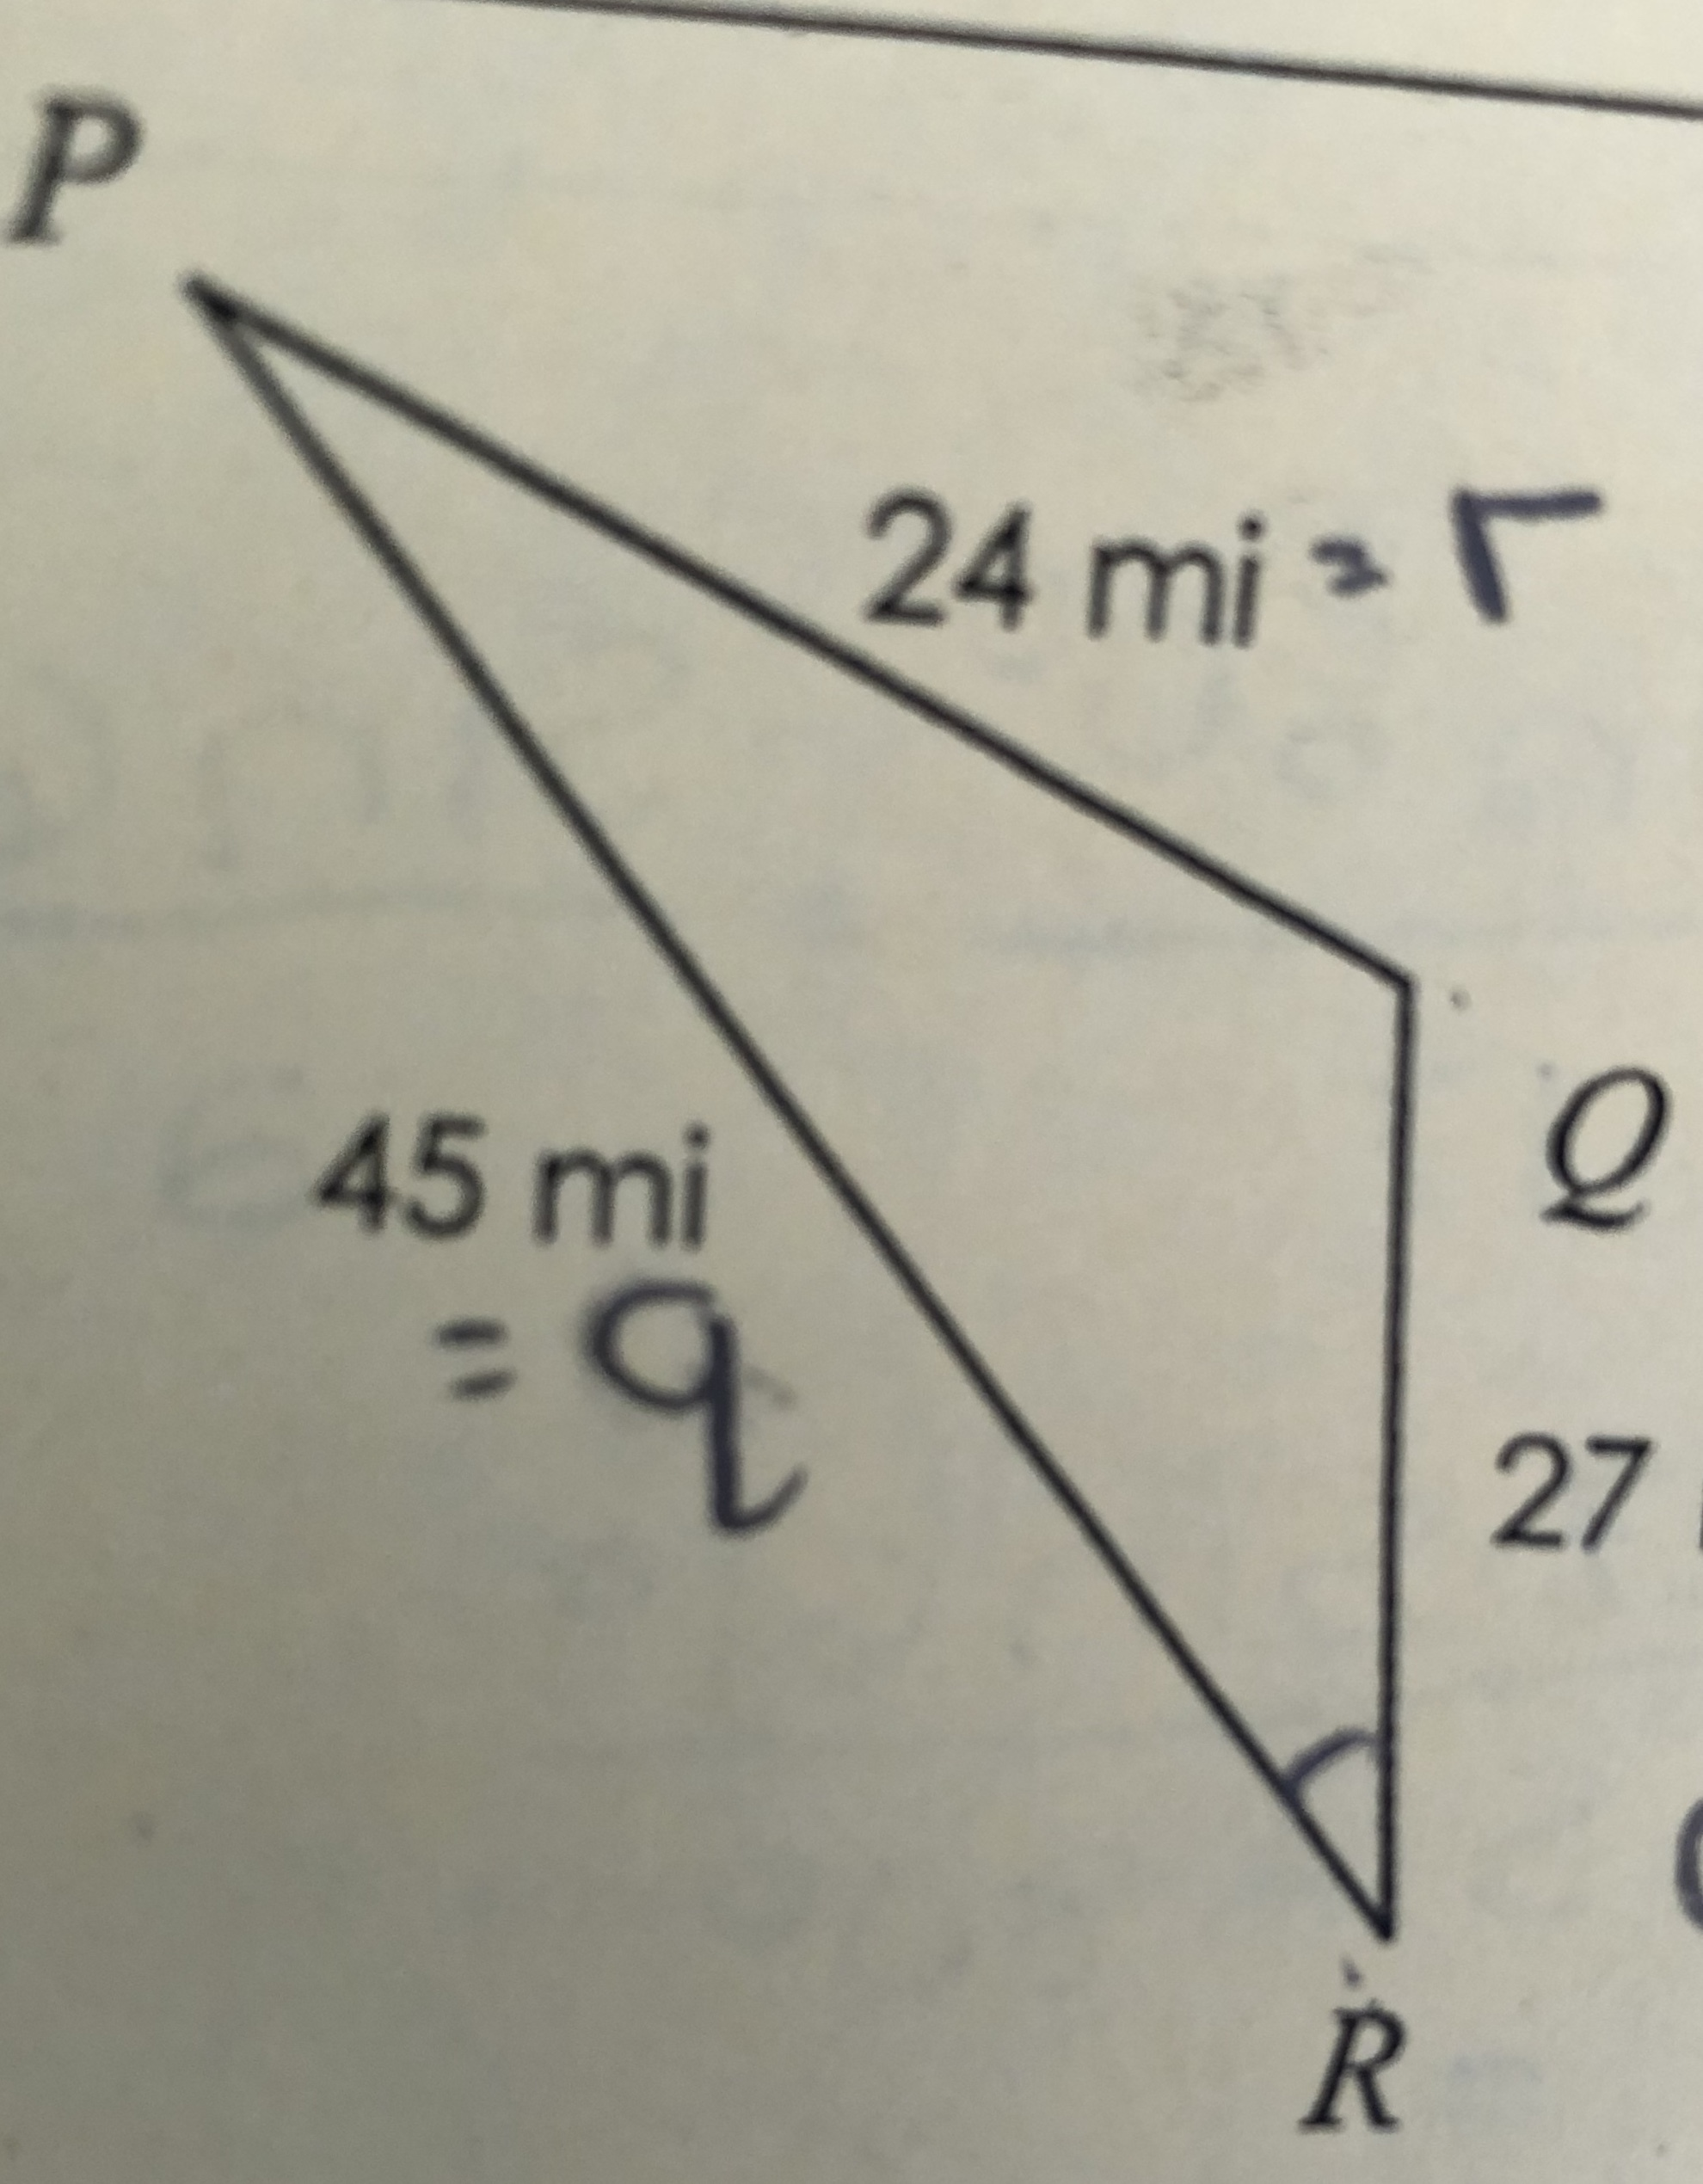 Use The Law Of Sines And Or The Law Of Cosines To Solve